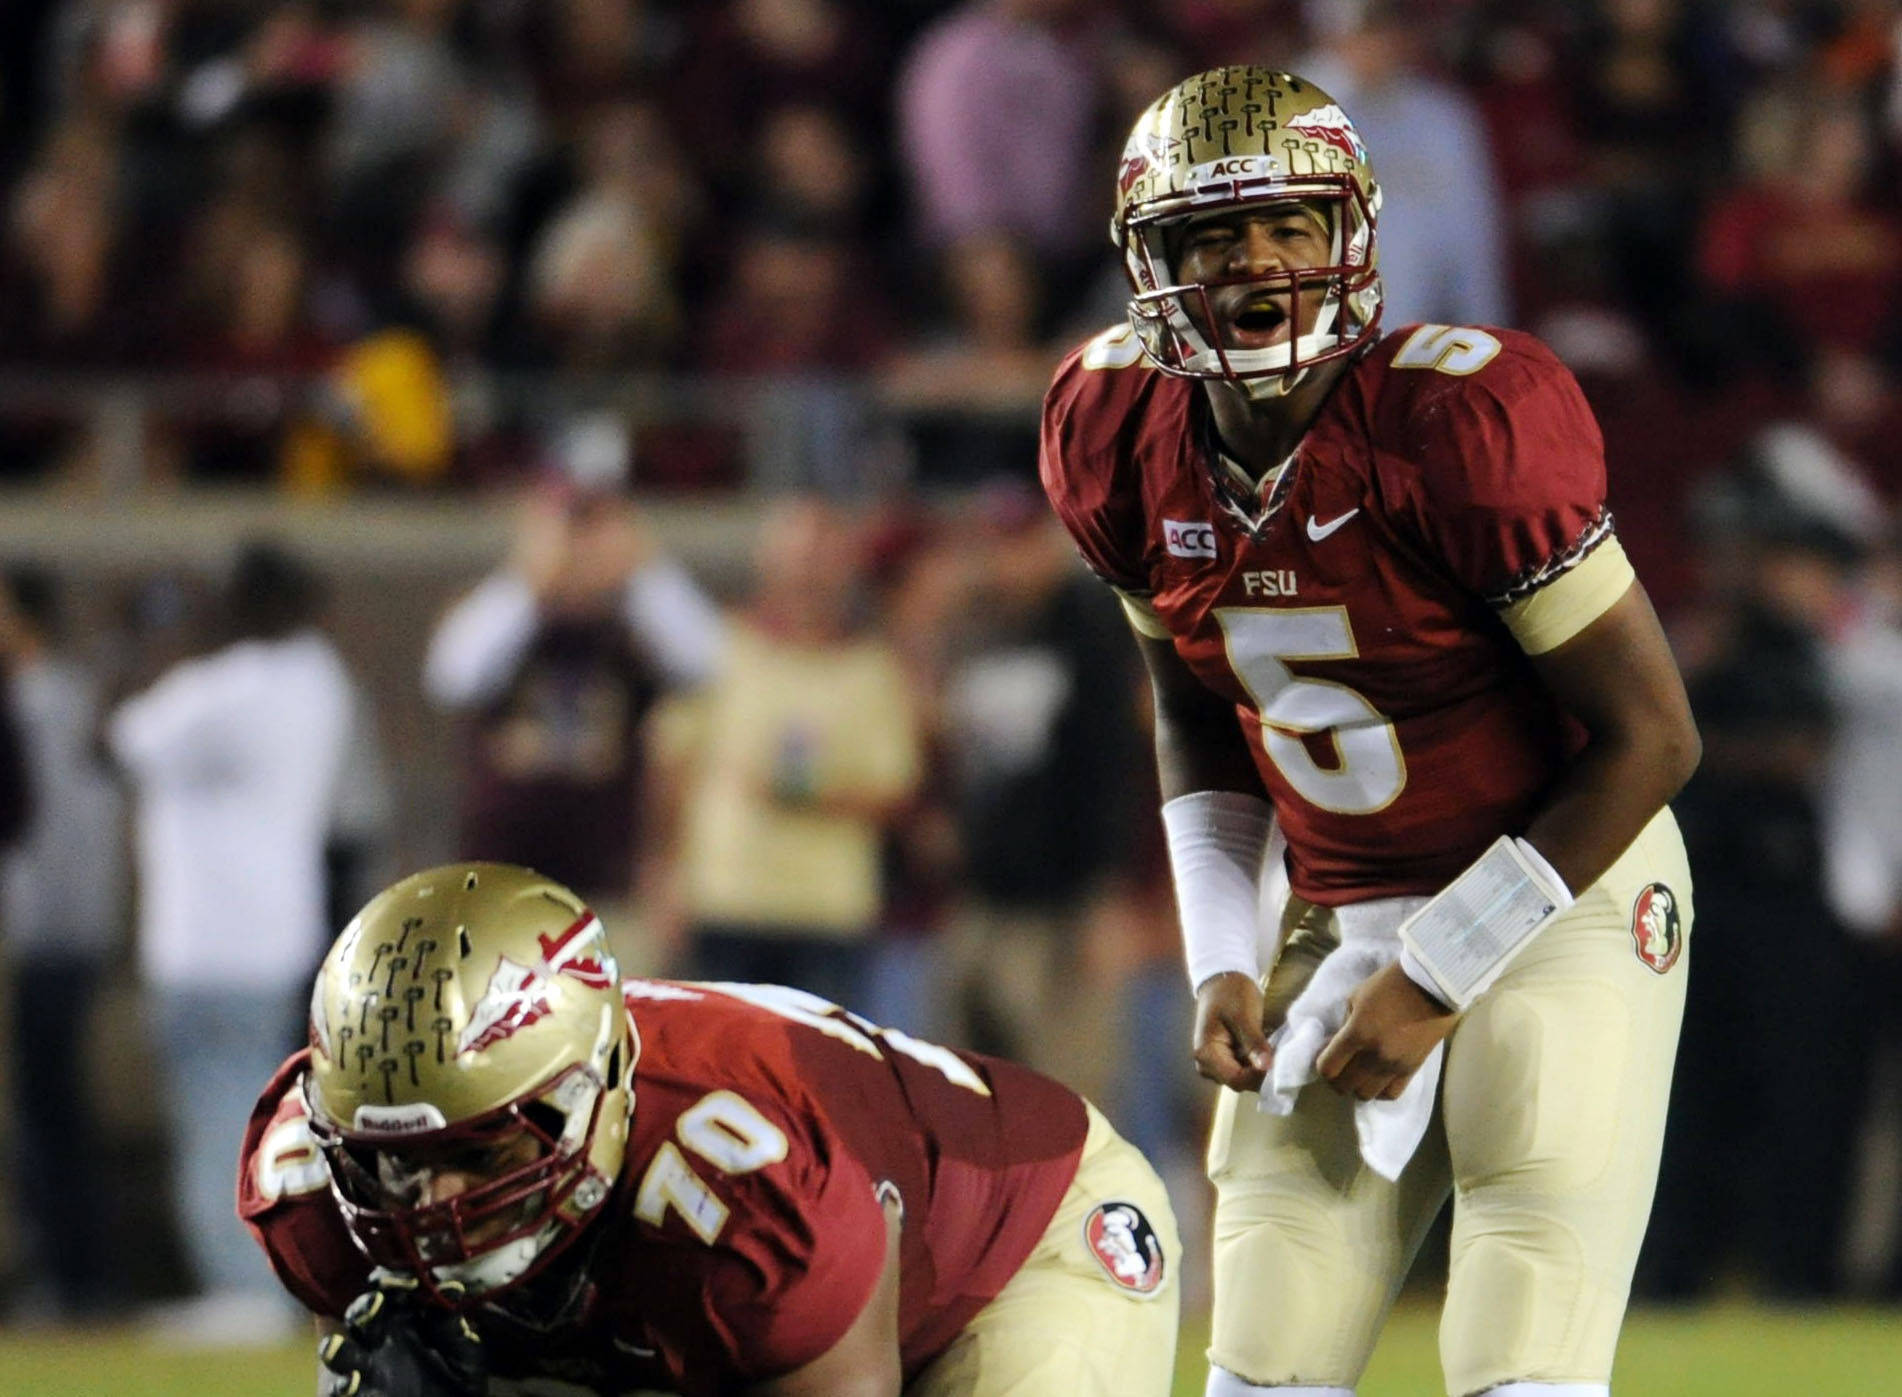 Florida State Seminoles quarterback Jameis Winston (5) prepares to take the snap from center Josue Matias (70) during the game against the Miami Hurricanes at Doak Campbell Stadium. Mandatory Credit: Melina Vastola-USA TODAY Sports